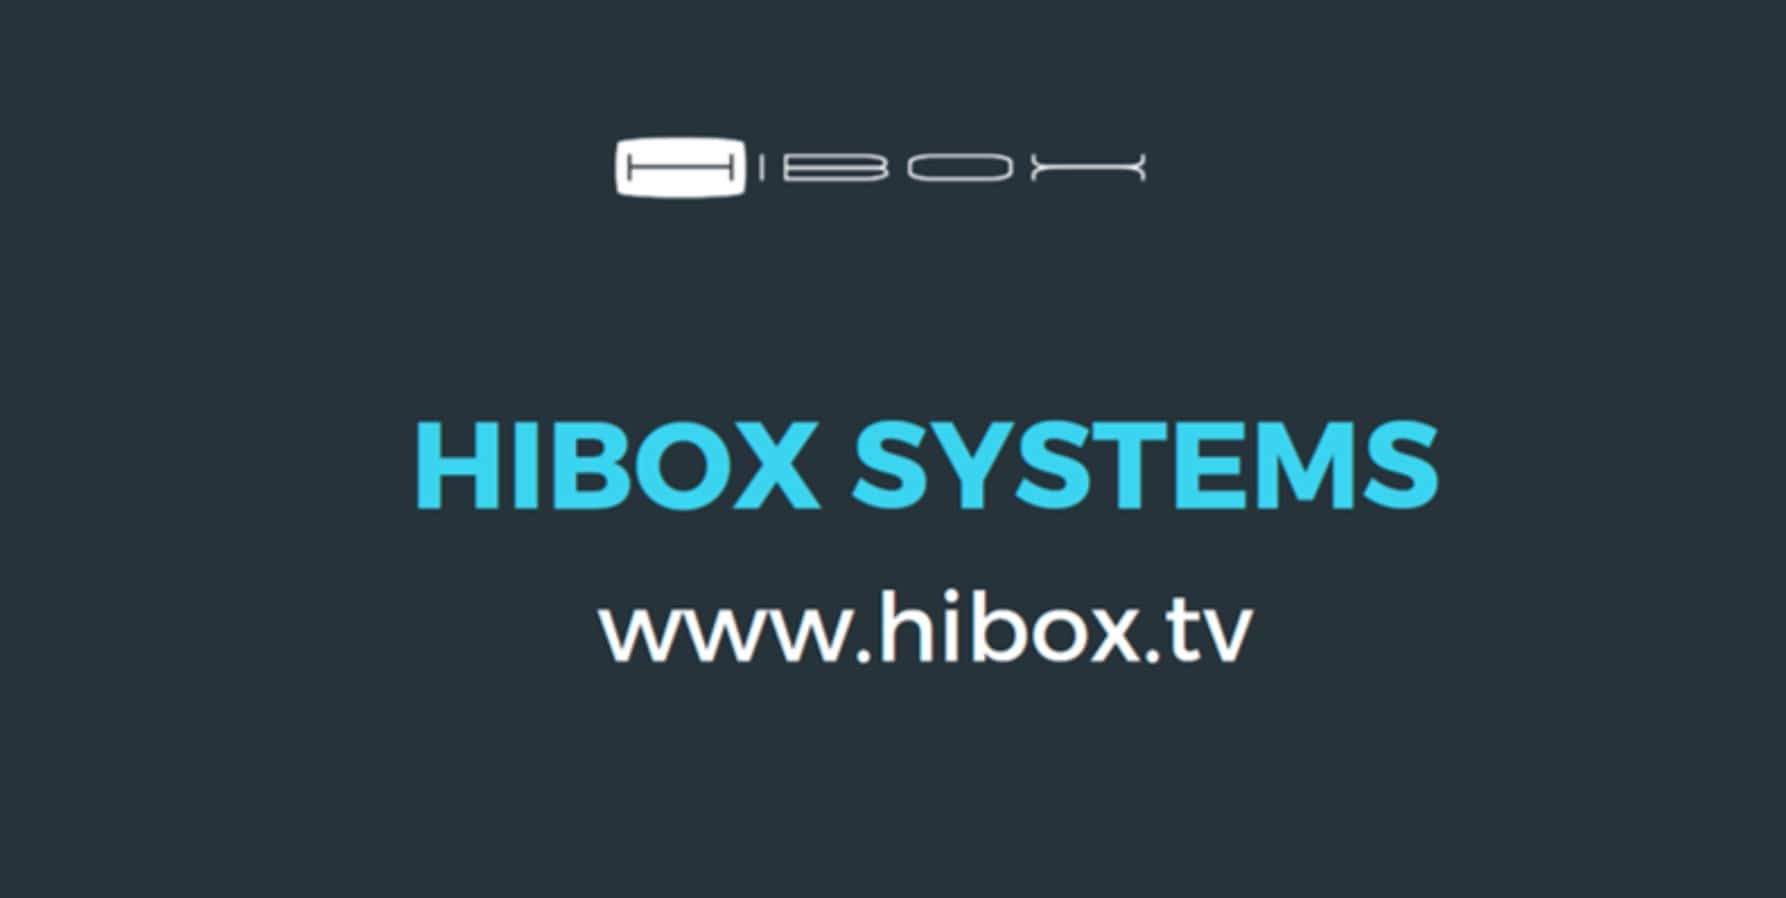 TRUST Advised Viria Oyj in the sale of Hibox Systems Oy to Accedo AB 1